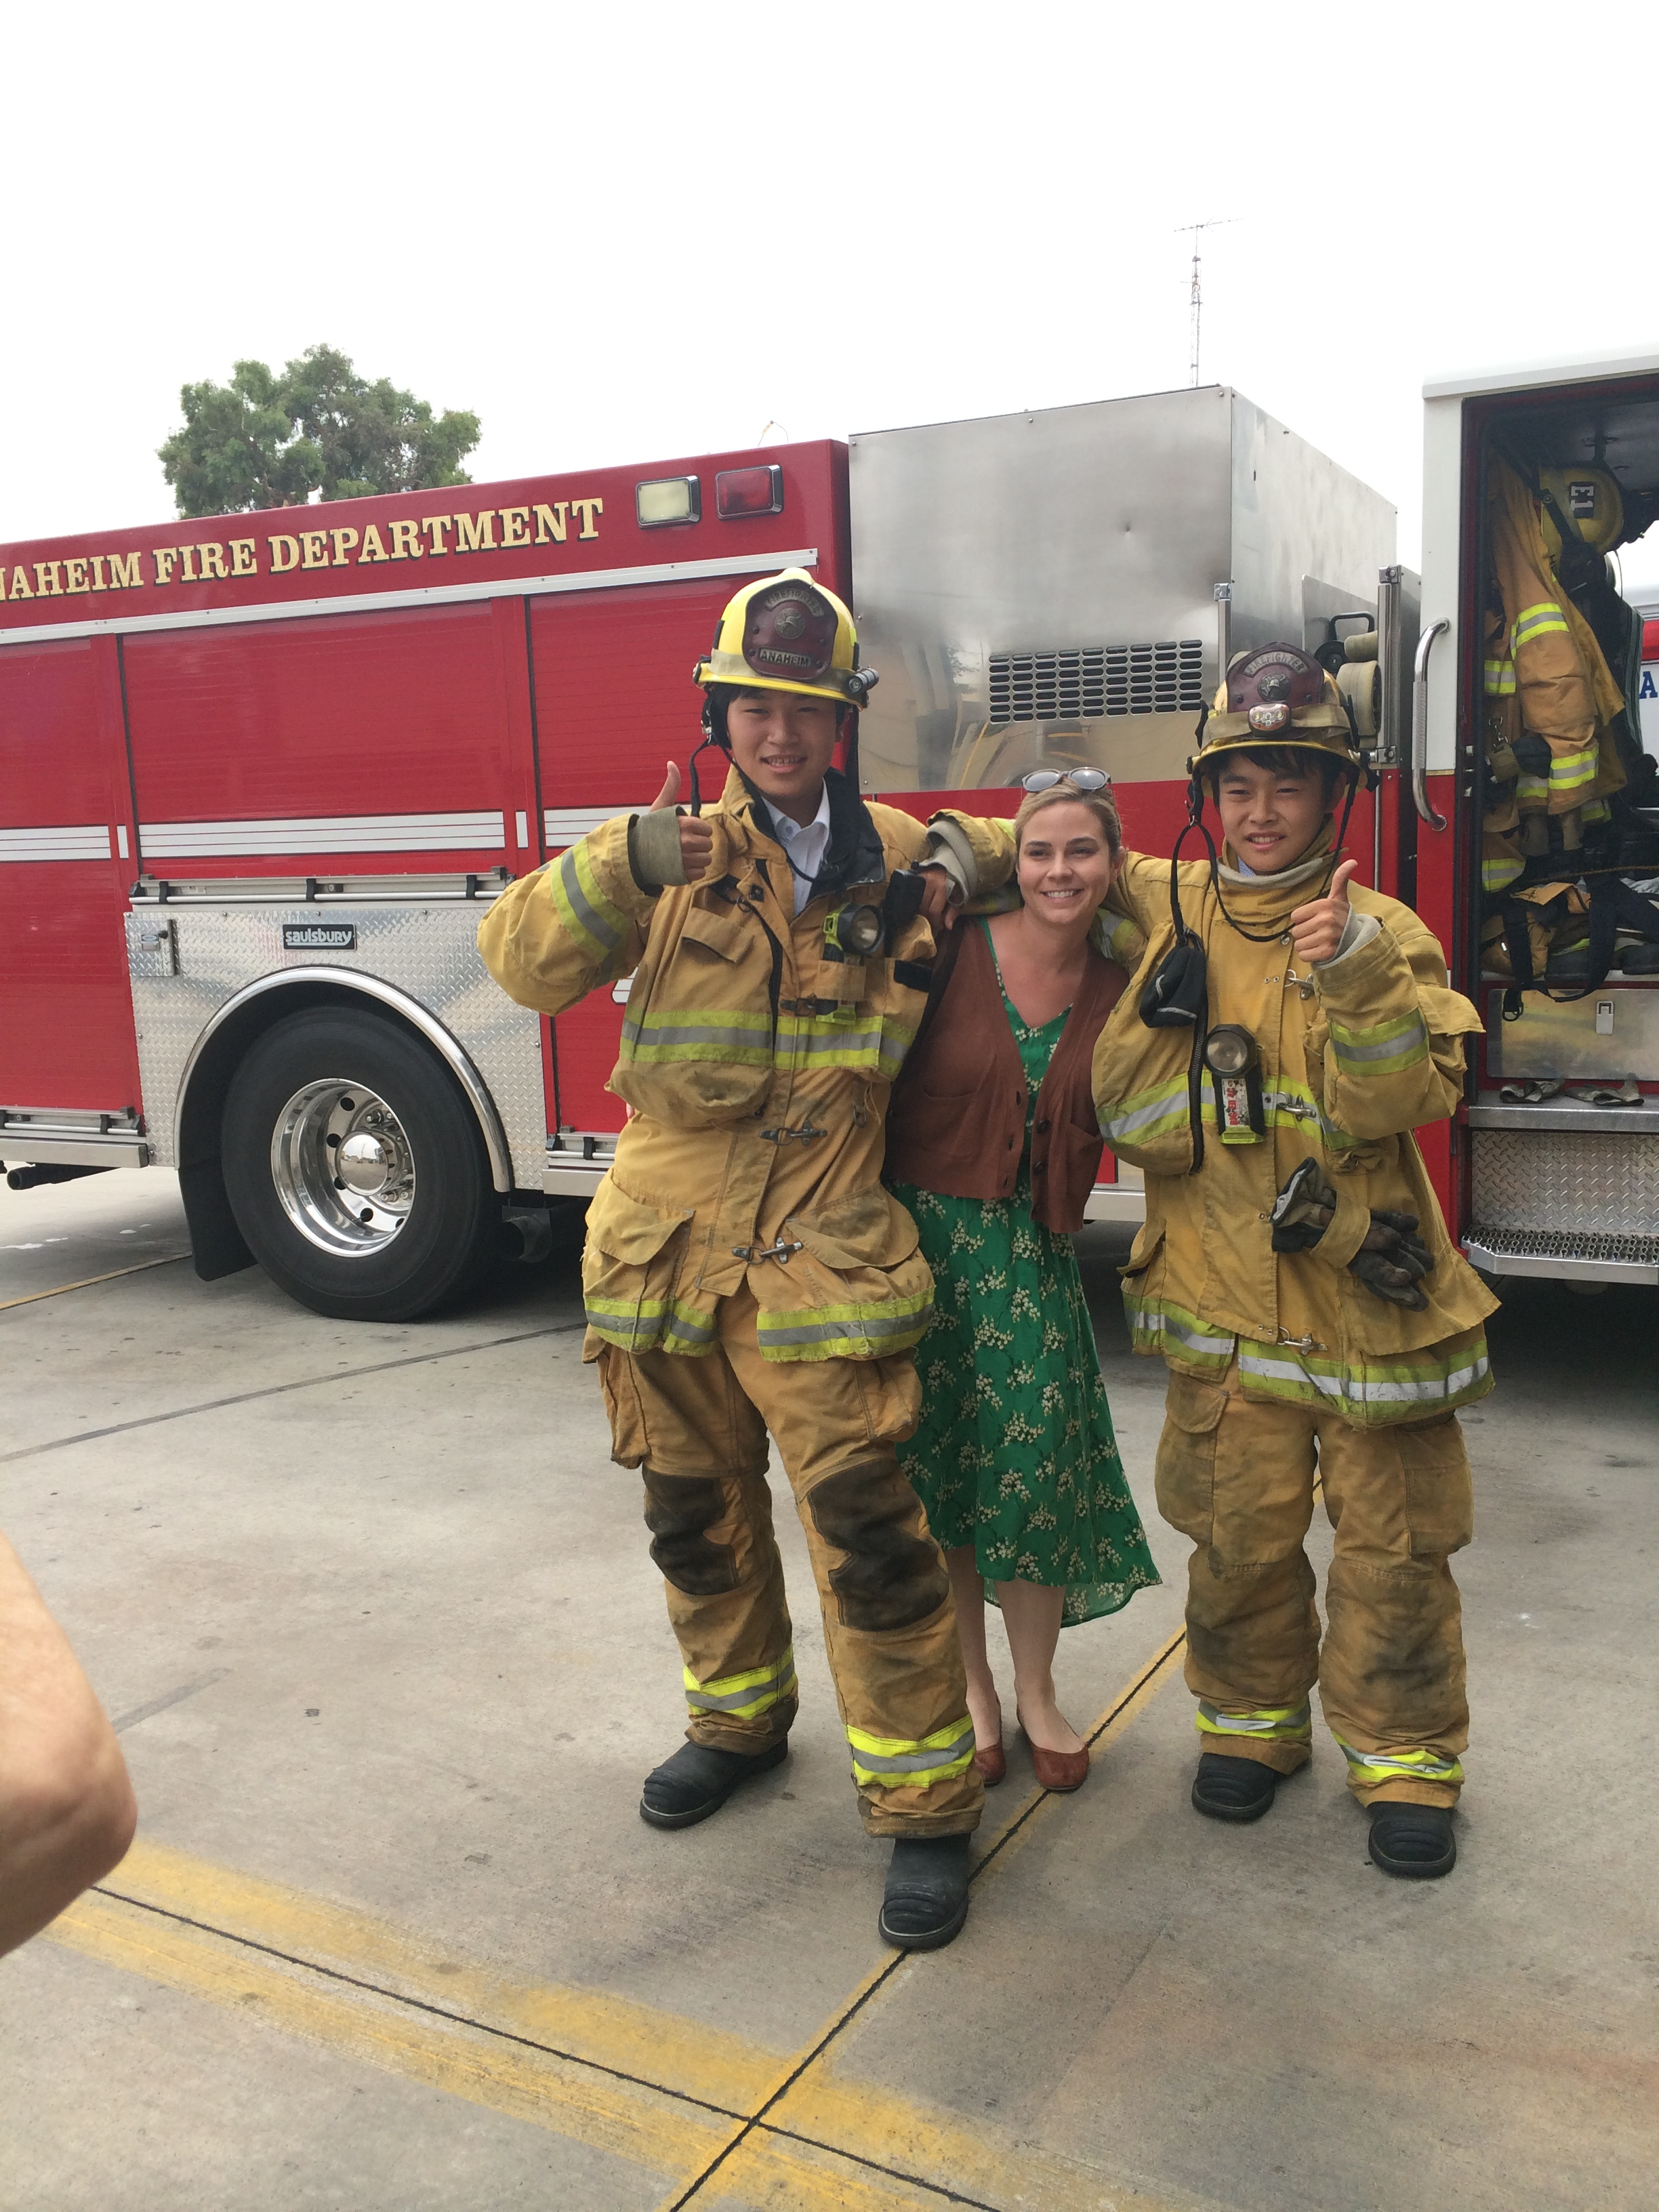 Two students in firefighter jacket, pants, and helmet with a women in a green dress between them.